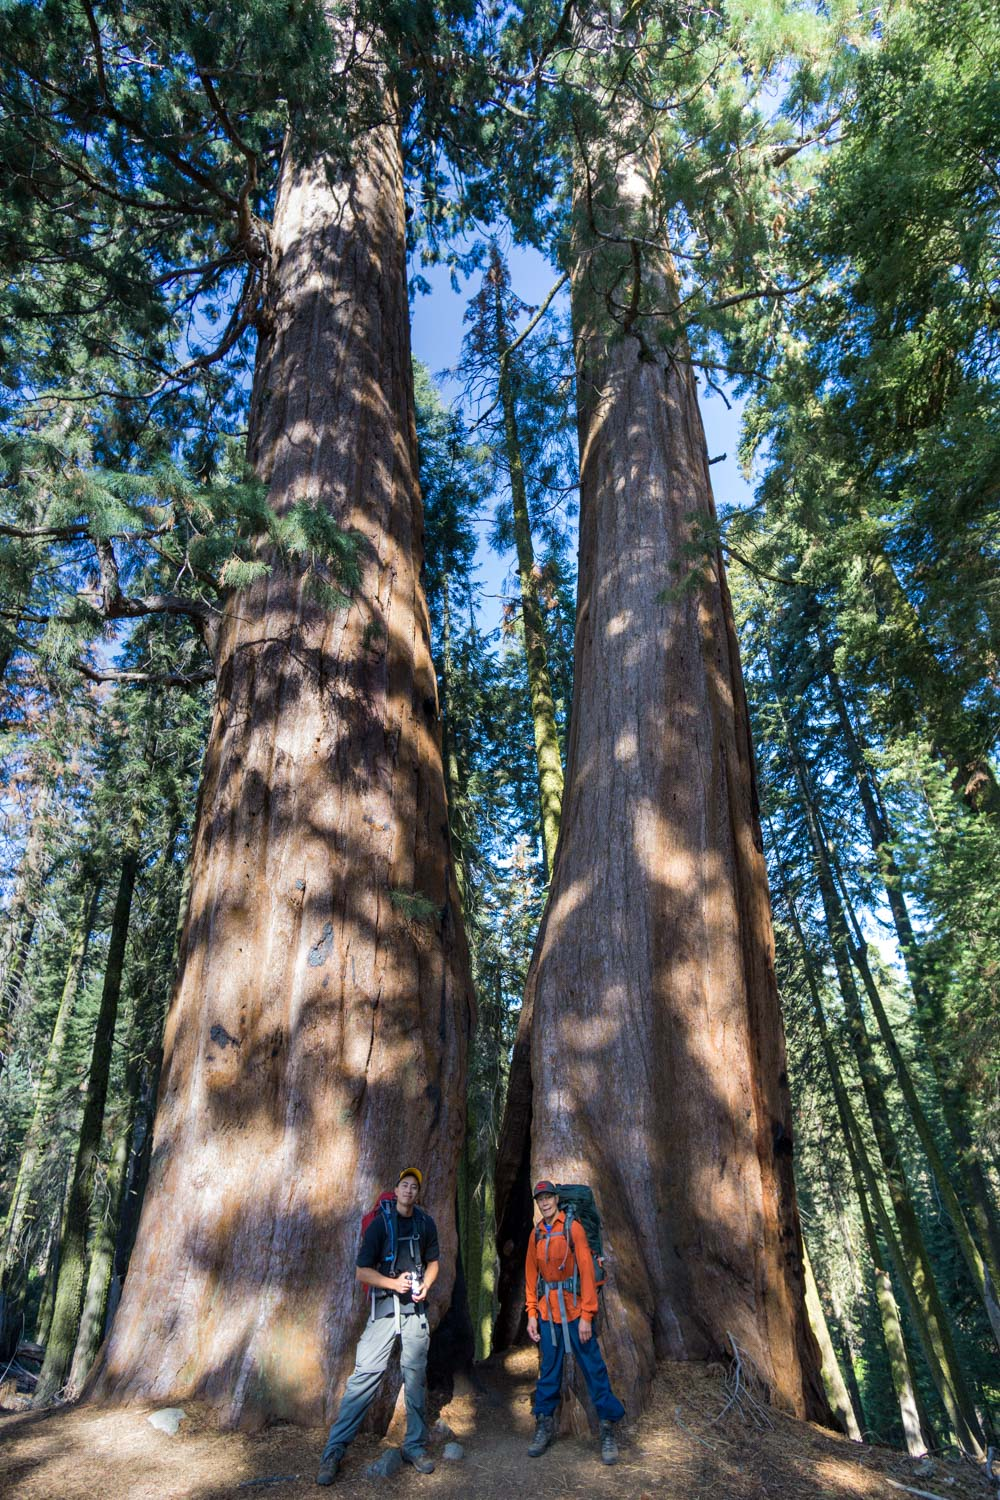 Giant sequoia trees in sequoia national park, ca